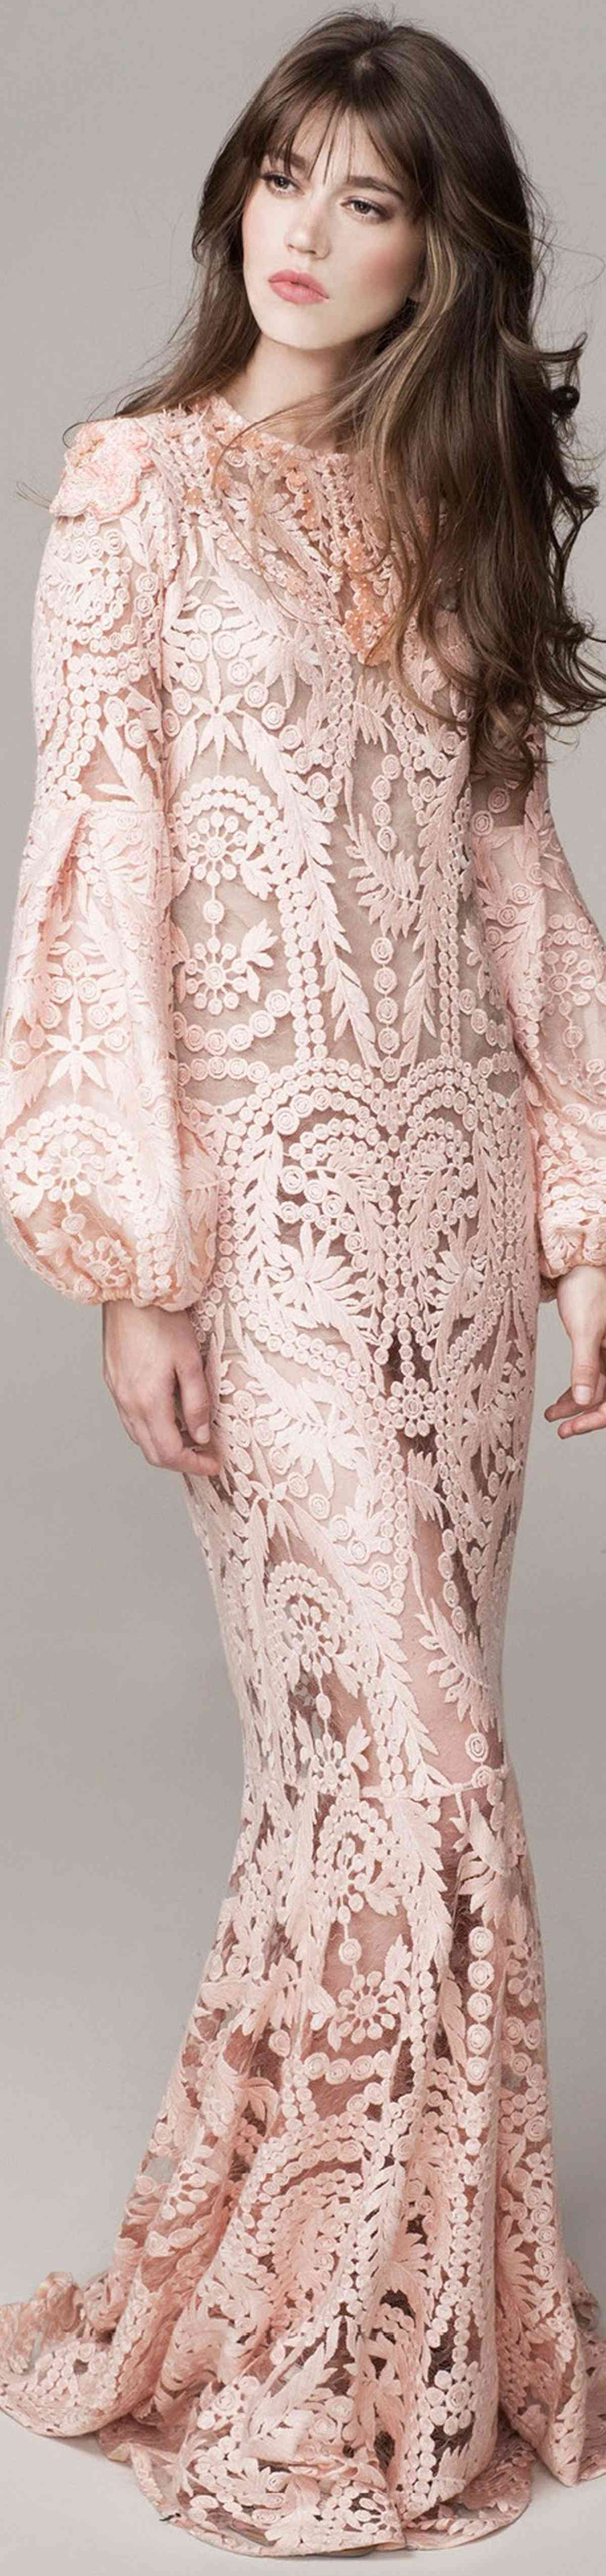 Pink sleeve dress idea for daily action 20 fashion